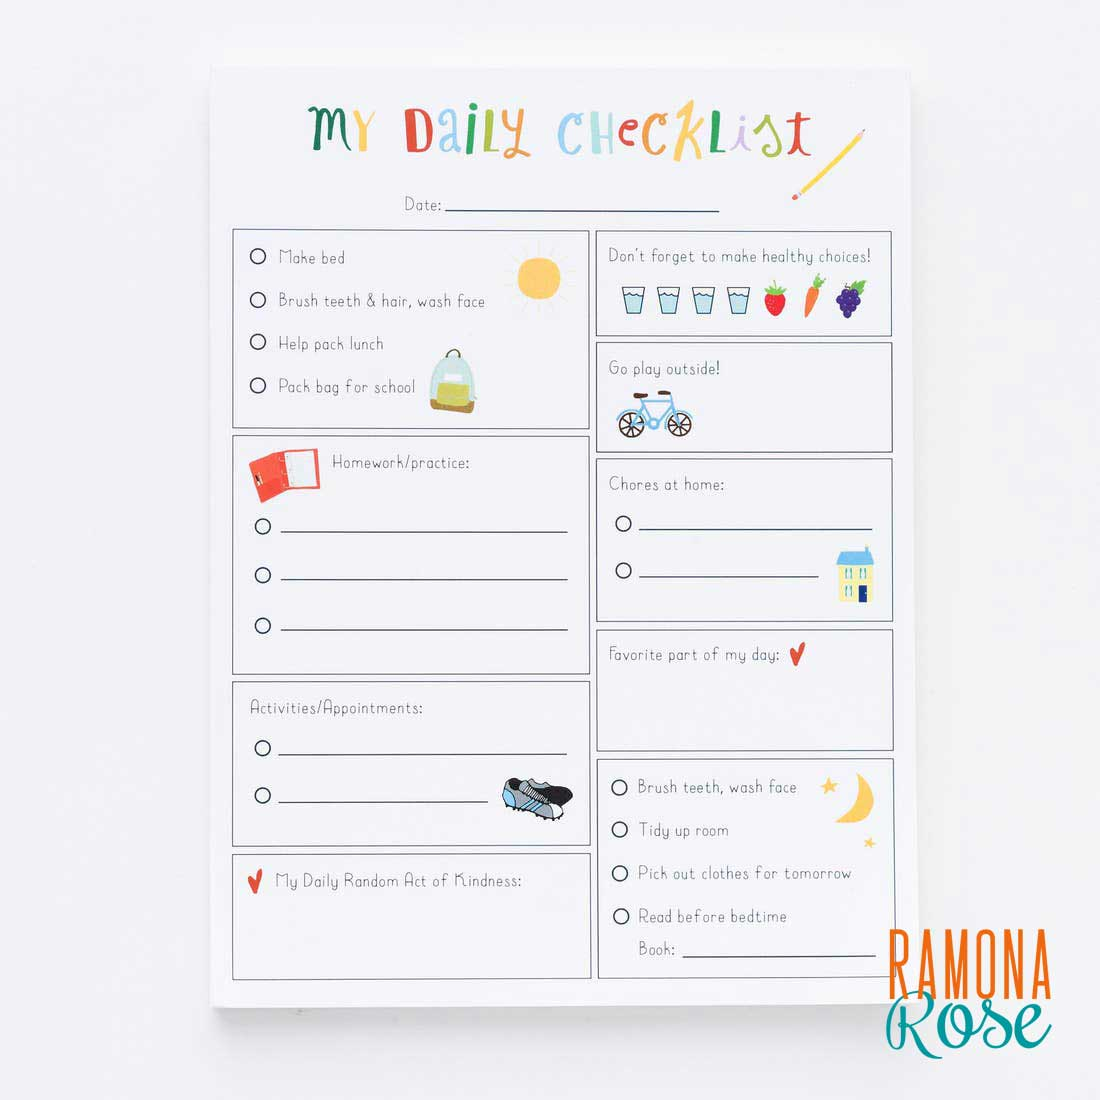 My Daily Checklist for Kids - Annie Taylor Design